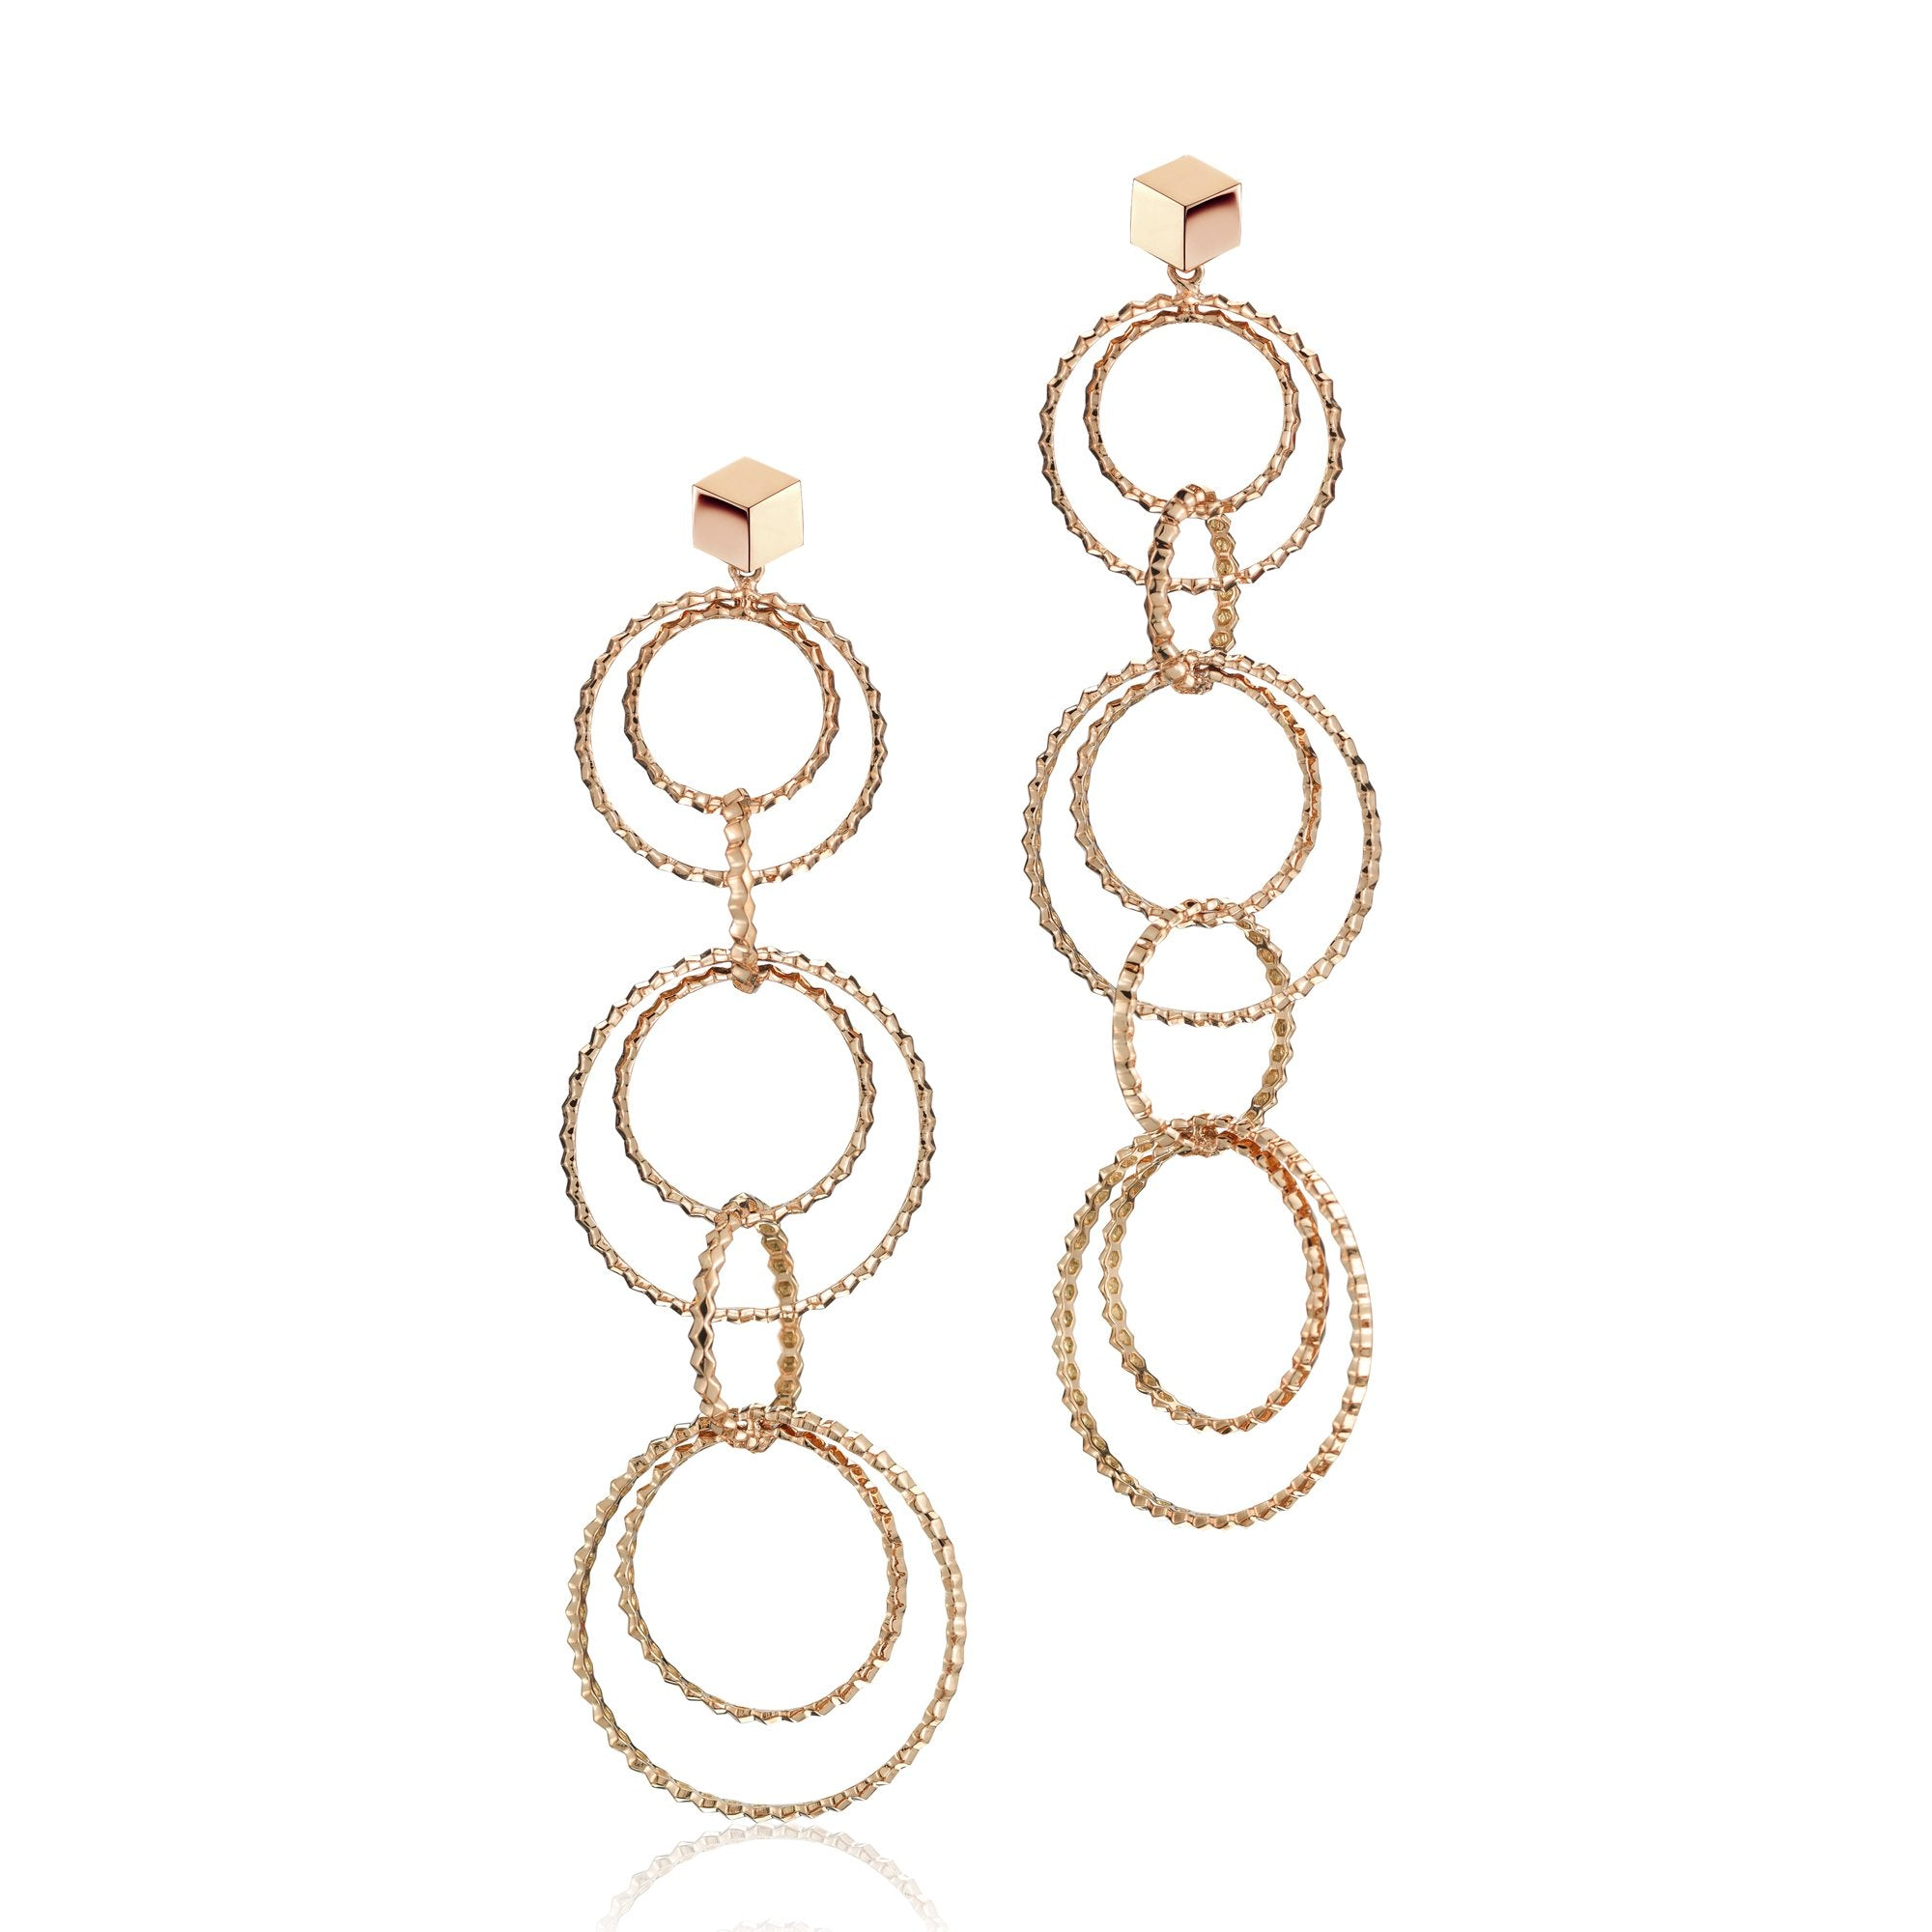 Rose Gold 'Brillante® Circoli' Earrings, Long - Paolo Costagli - 1